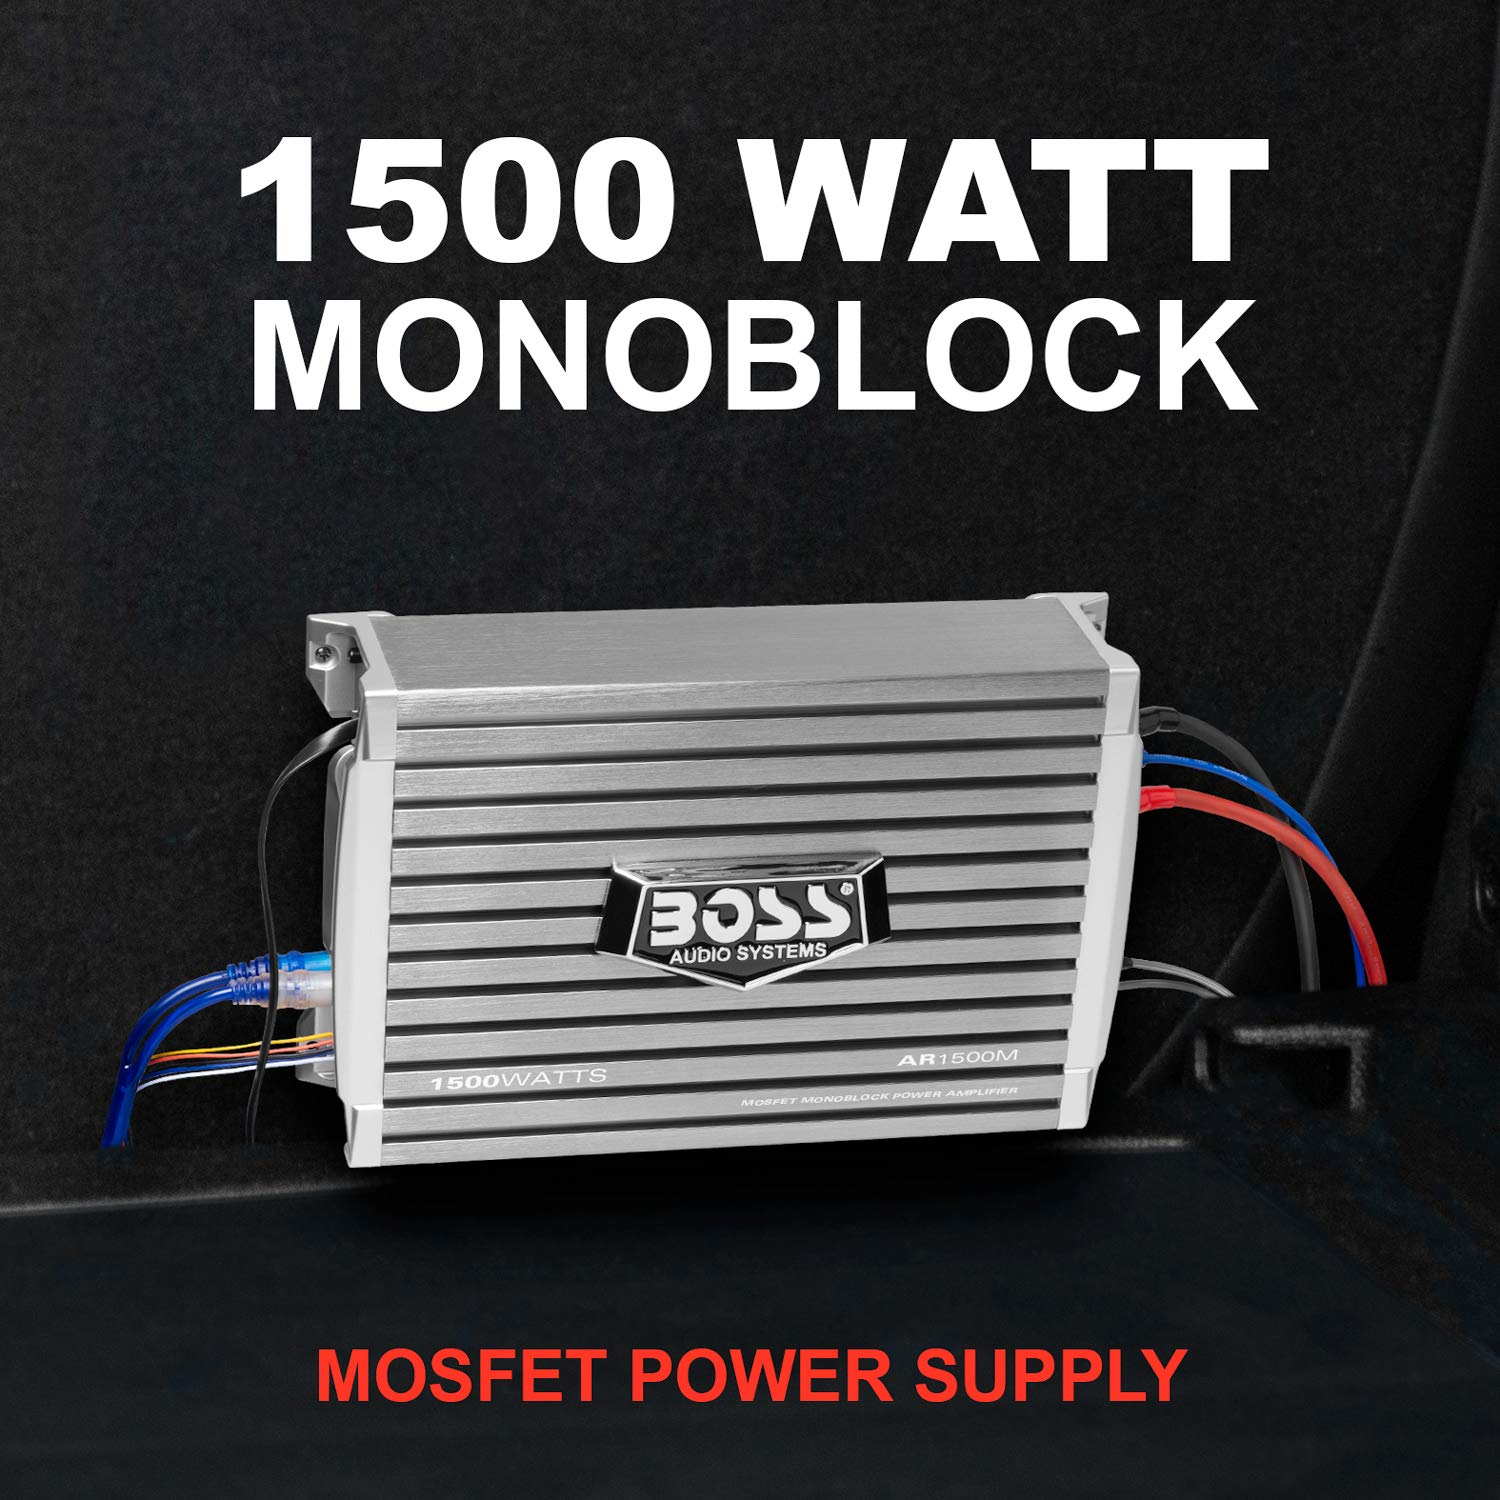 Boss Audio Ar1500m Car Amplifier 1500 Watts Max Power 15 W Class B 2 4 Ohm Stable A Monoblock Mosfet Supply Remote Subwoofer Control